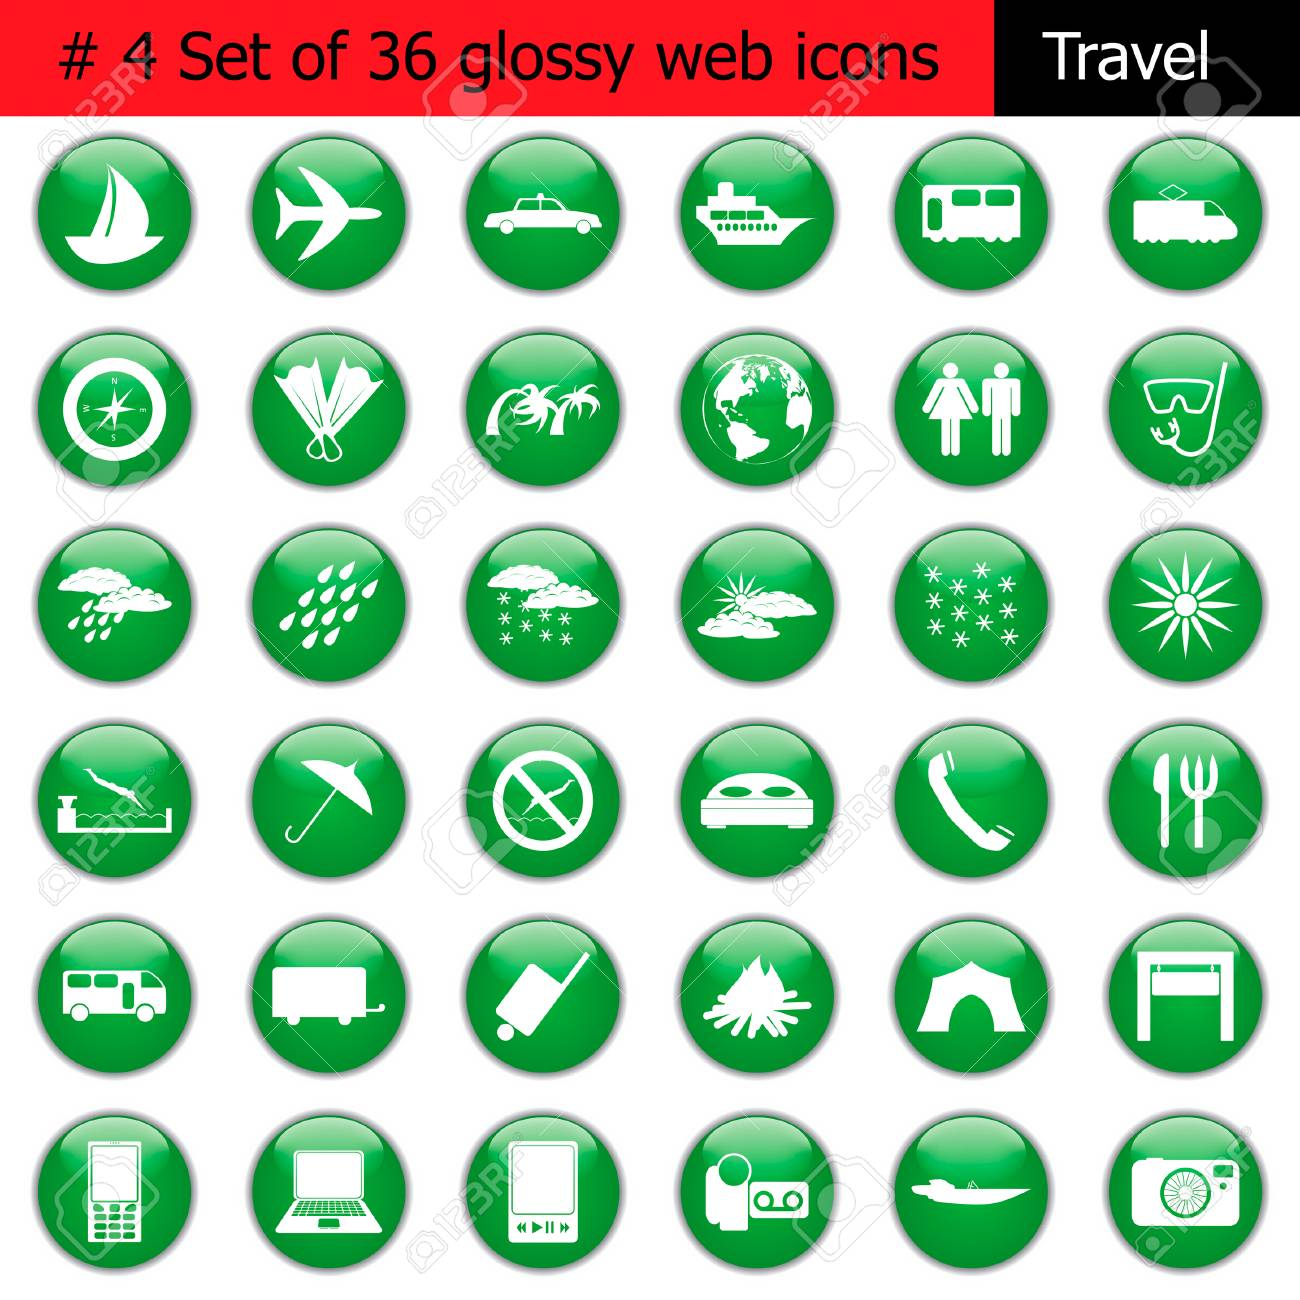 Collection of different icons for using in web design. Set #4. Travel. Stock Vector - 5426499